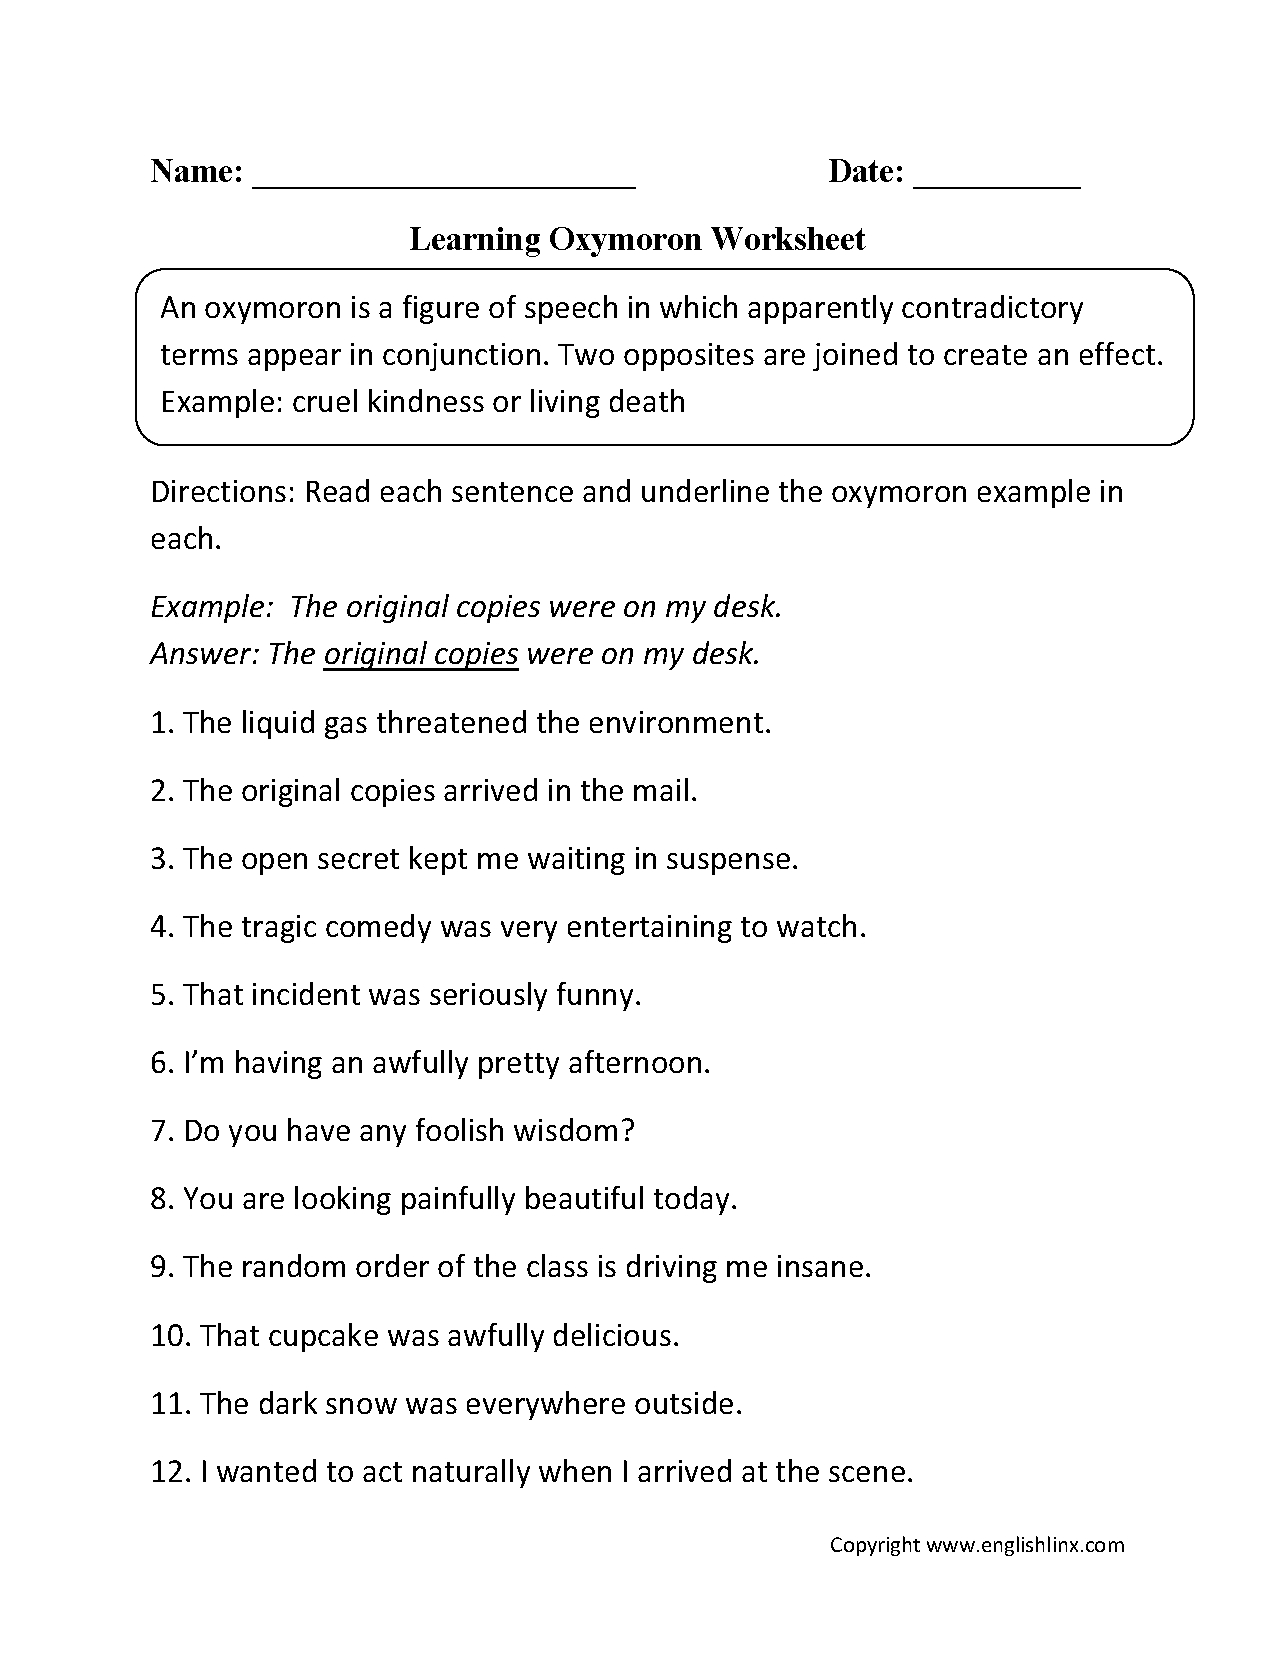 worksheet Figurative Language Worksheets For Middle School figurative language worksheets oxymoron onomatopoeia sounds worksheet